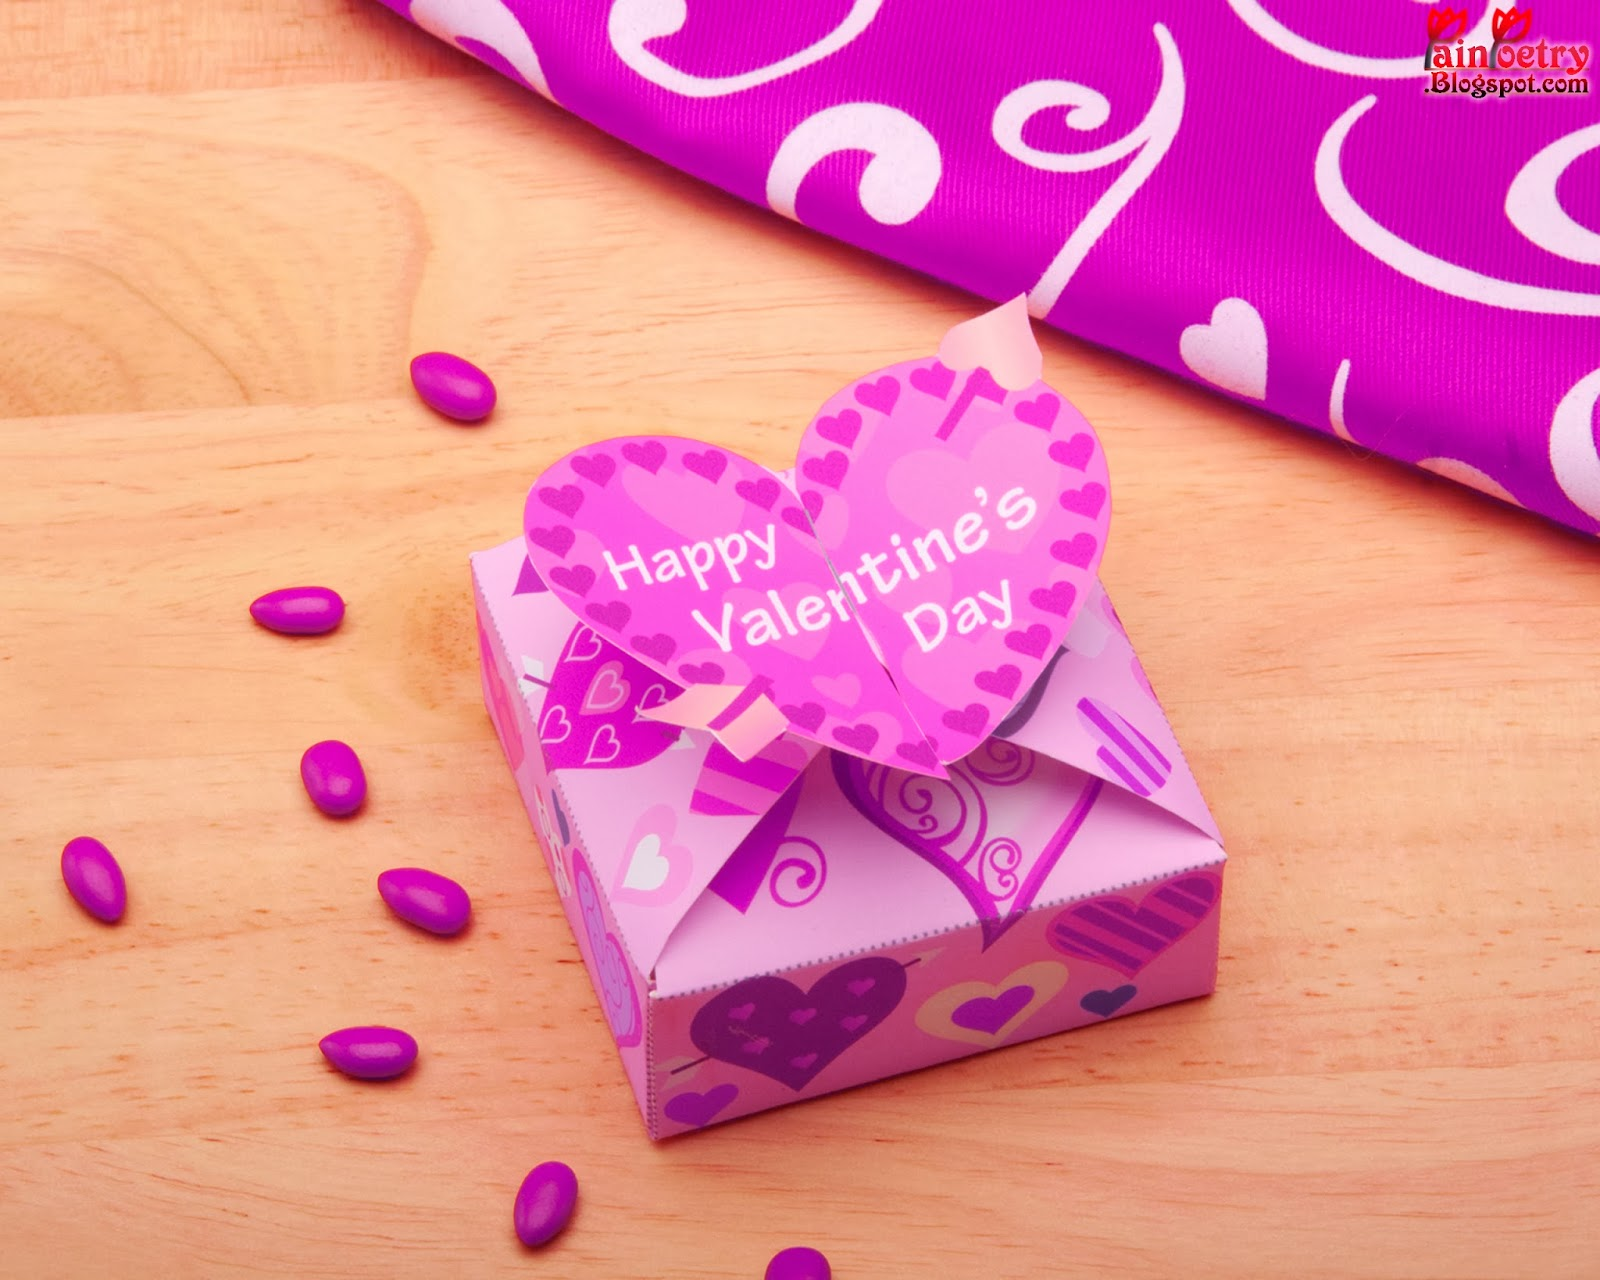 Happy-Valentines-Day-Gift-For-Boyfriend-Image-HD-Wide